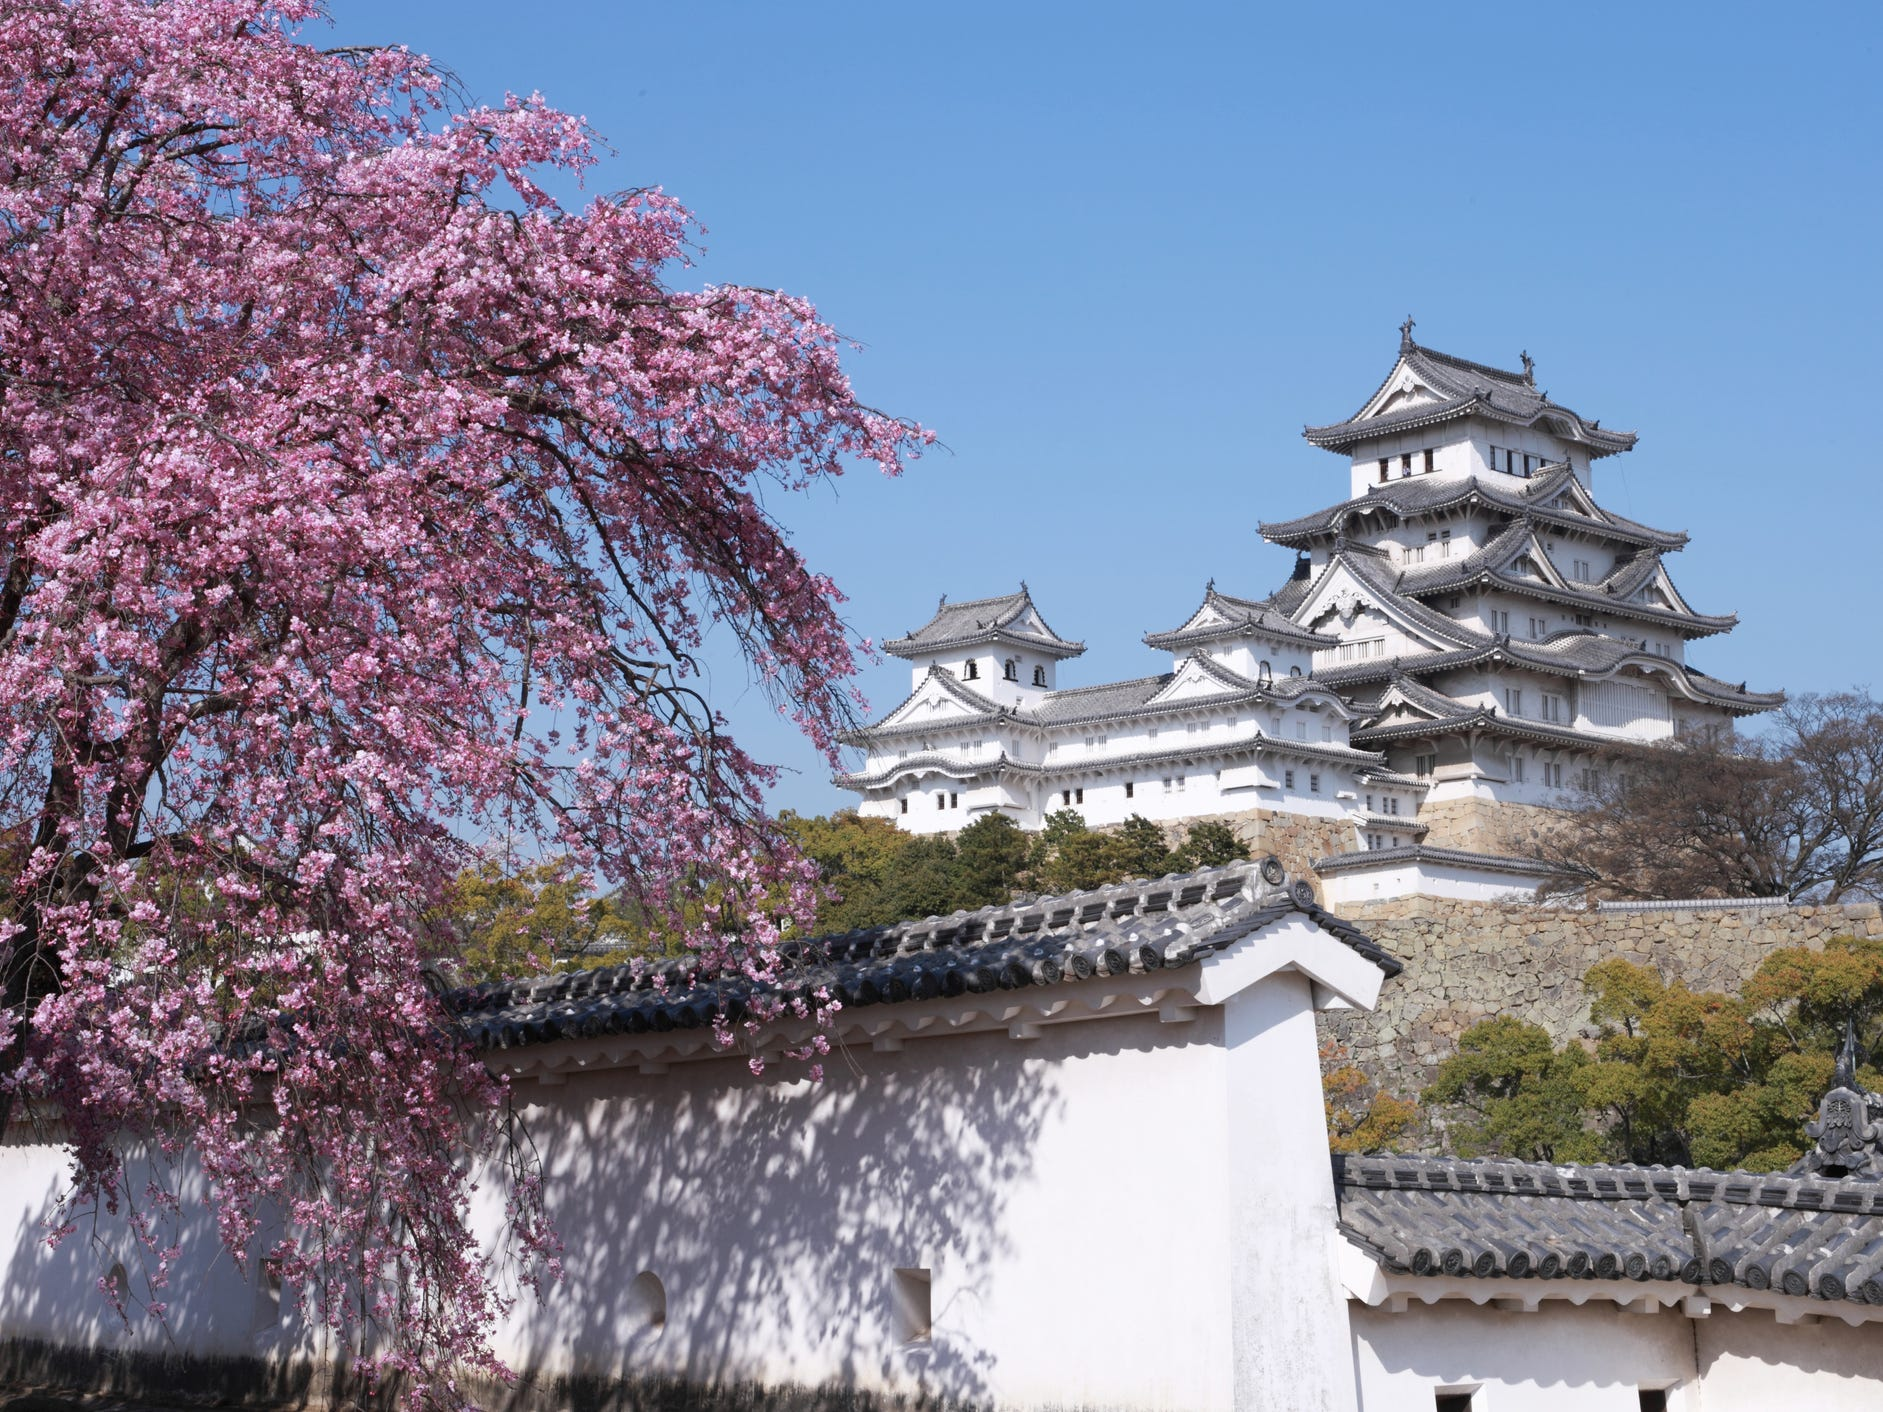 Himeji Castle is also one of Japan's best places for cherry blossom viewing, though at this time of year, it can get very crowded.